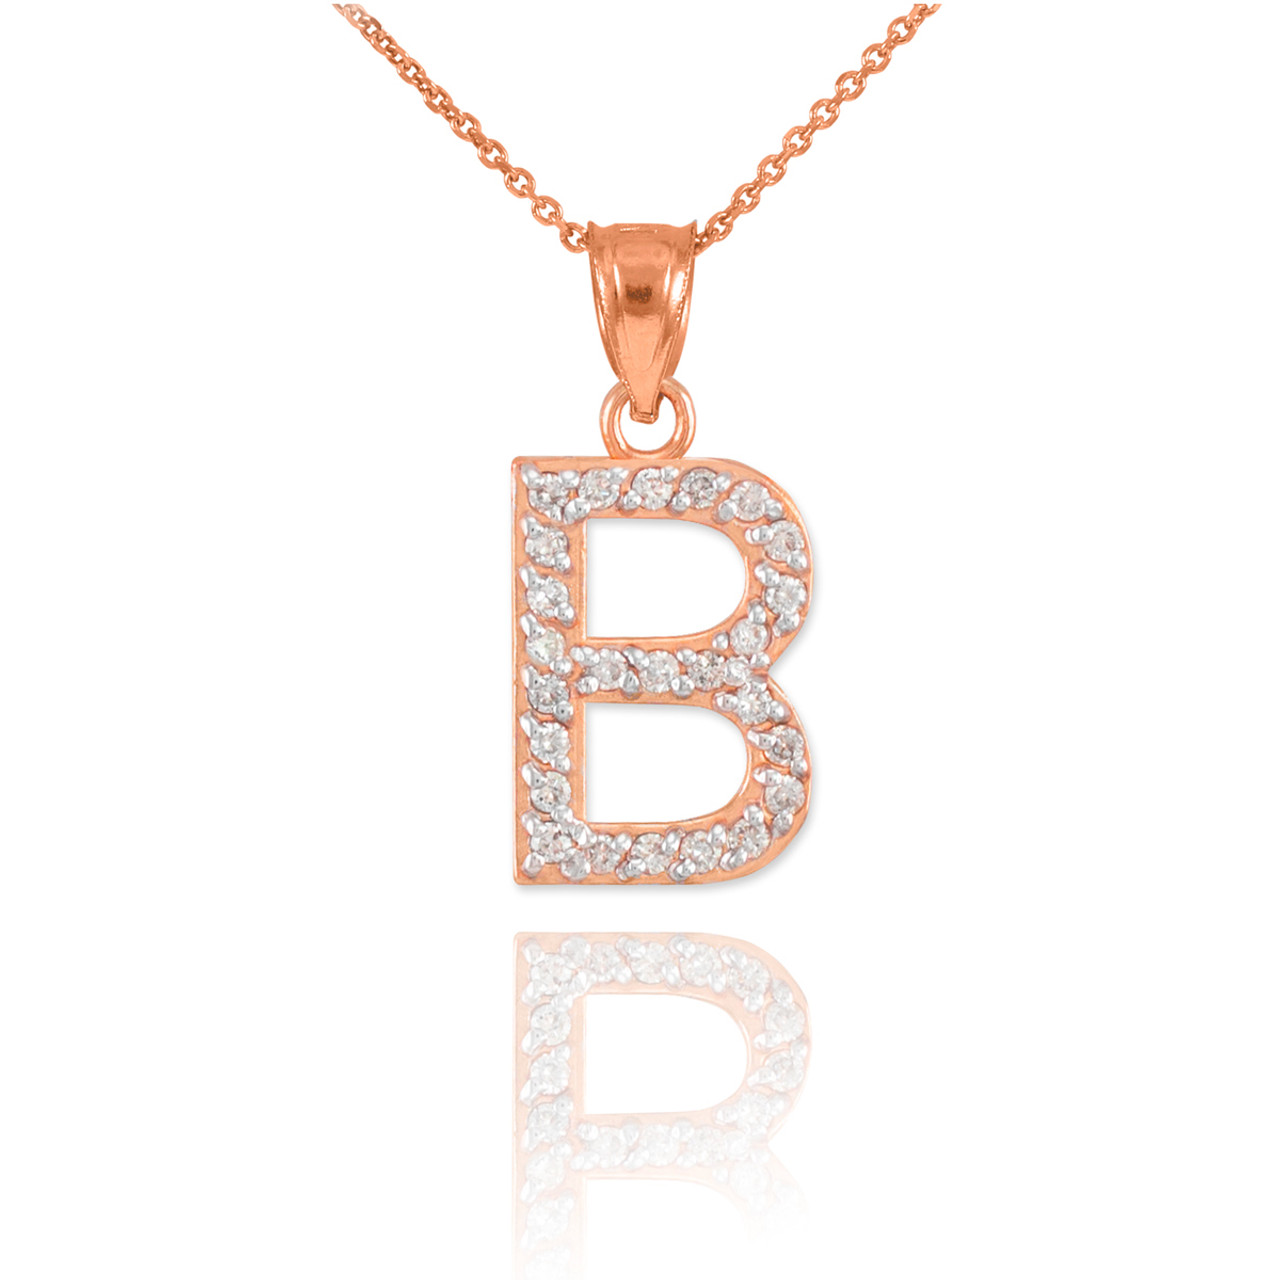 rose gold letter quotbquot initial diamond pendant necklace With rose gold letter pendant necklace